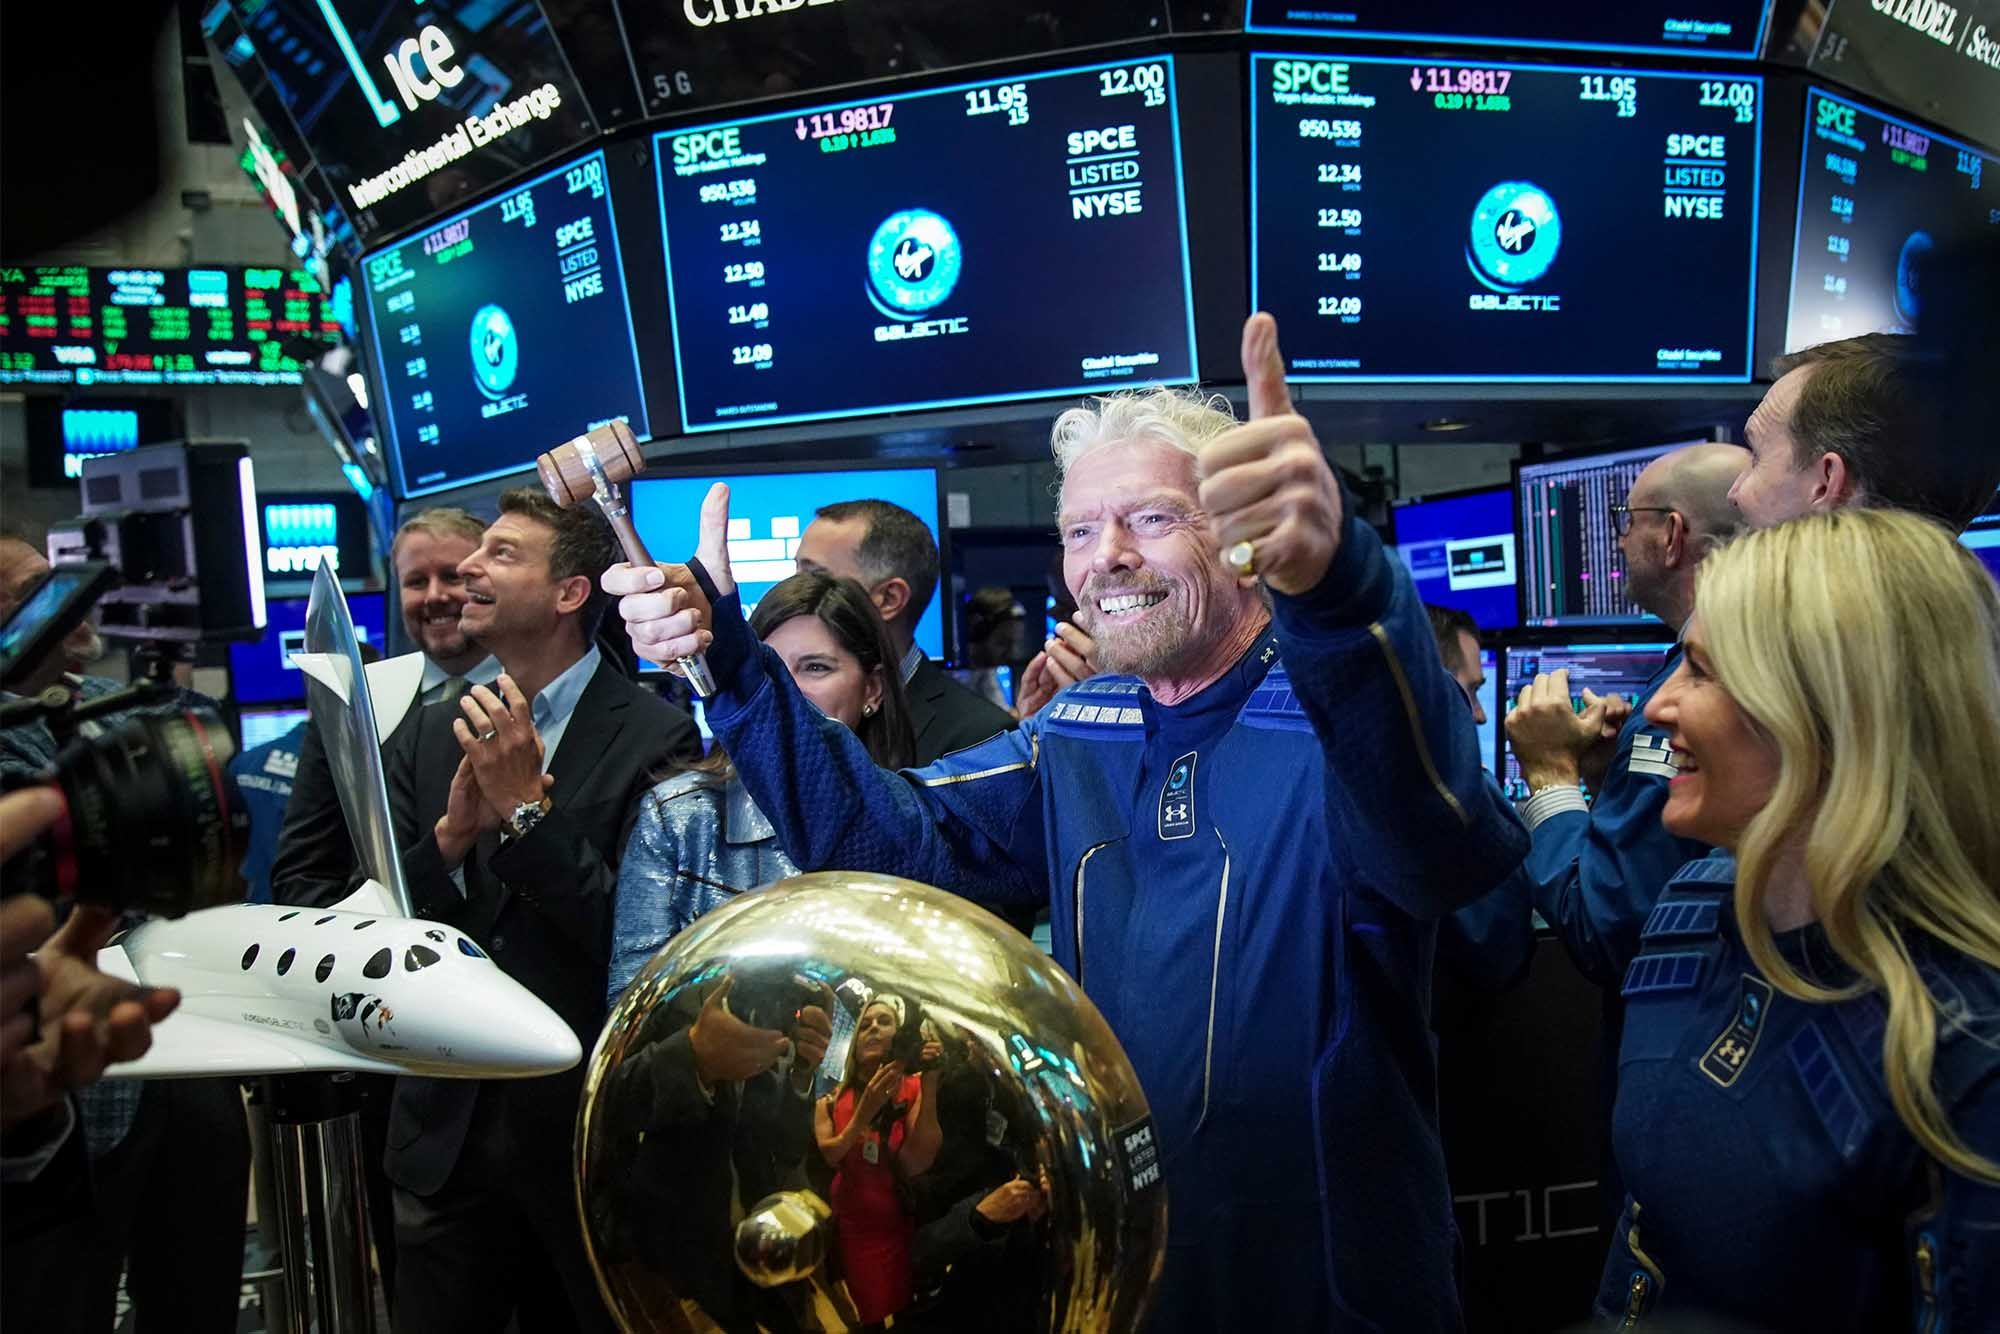 Sir Richard Branson, Founder of Virgin Galactic, gives the thumbs up after ringing a ceremonial bell on the floor of the New York Stock Exchange. (Photo: Getty Images)